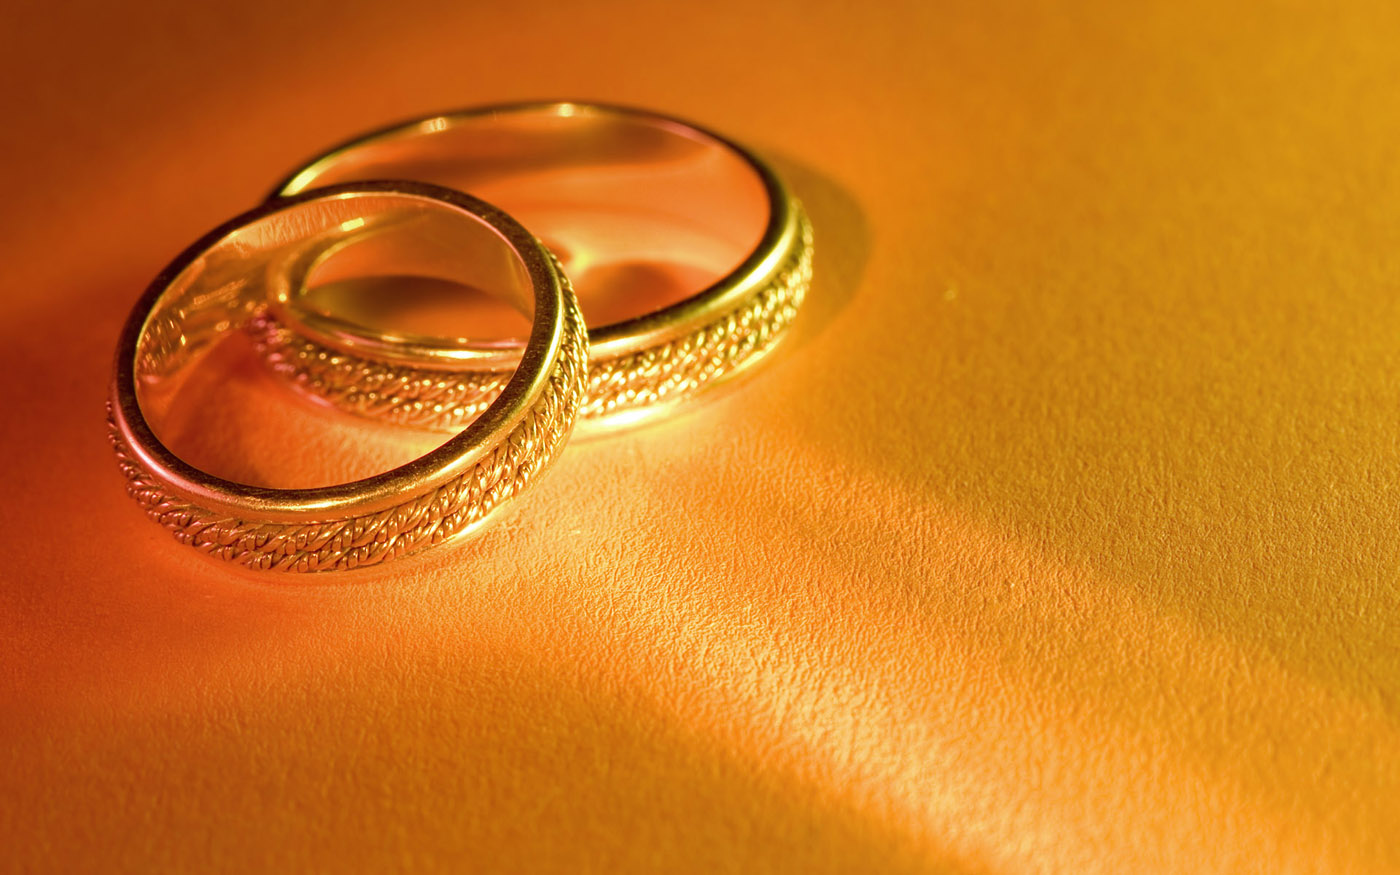 Weding Rings In The Bible 02 - Weding Rings In The Bible